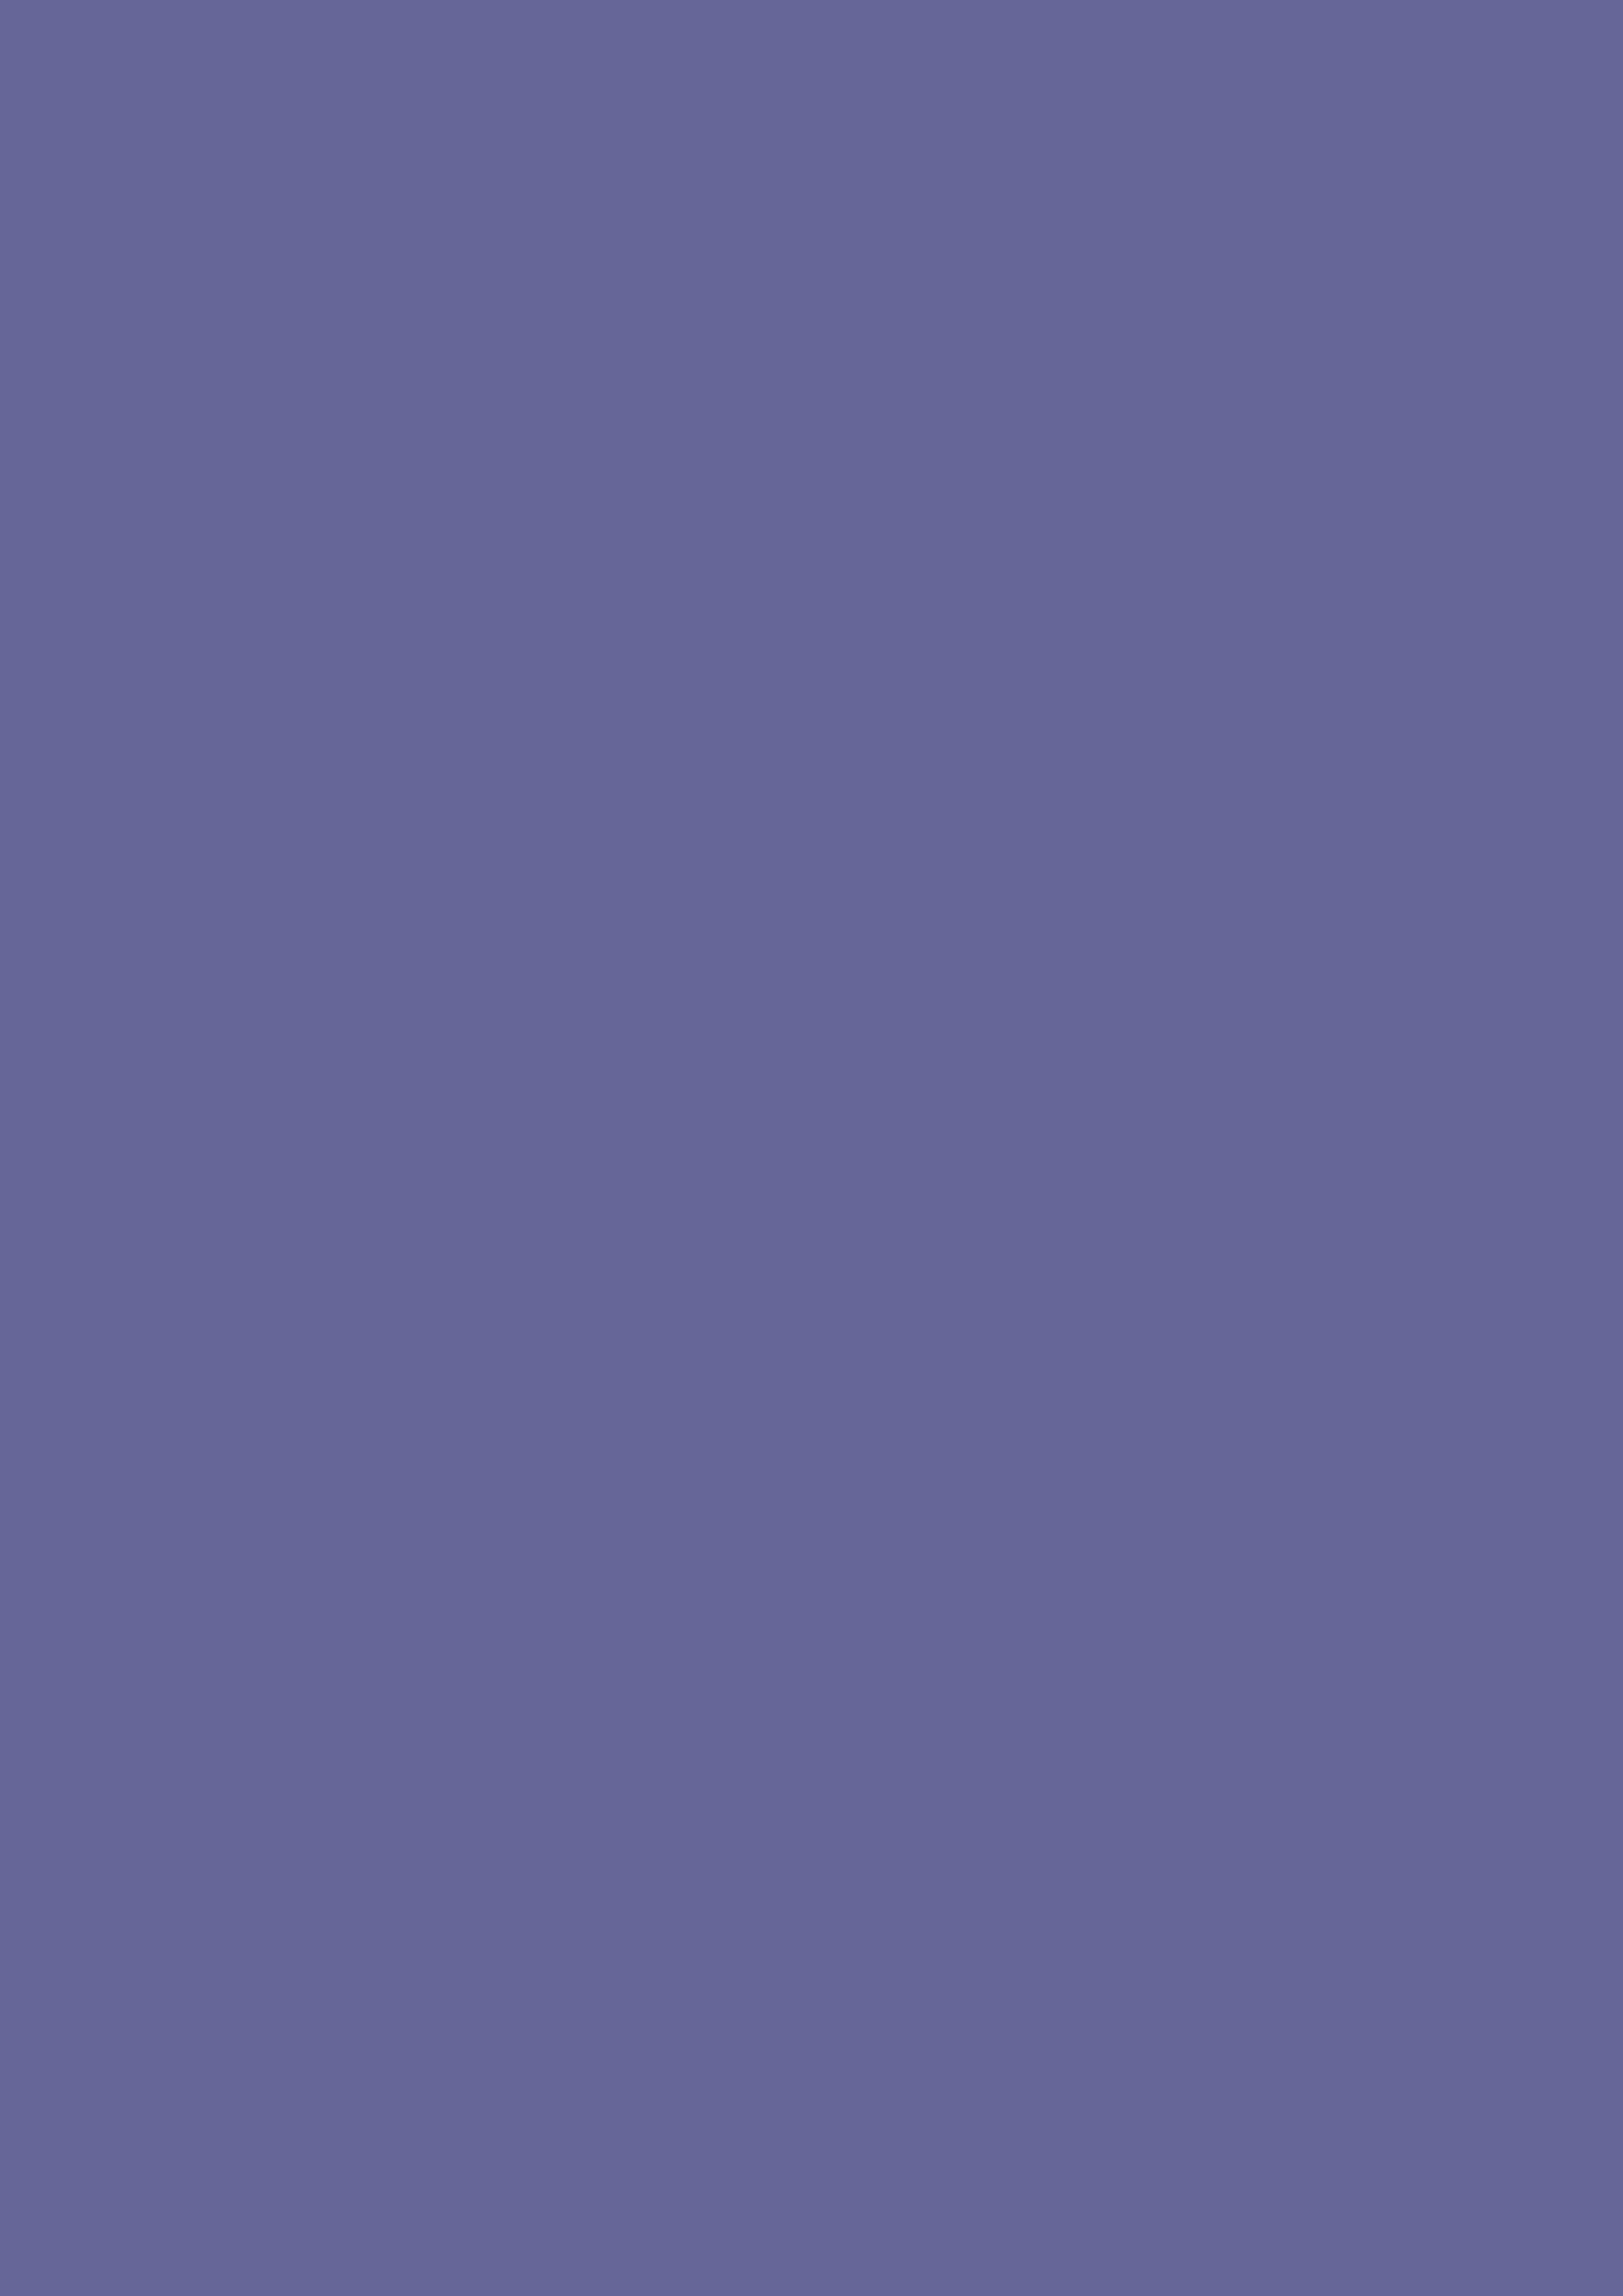 2480x3508 Dark Blue-gray Solid Color Background